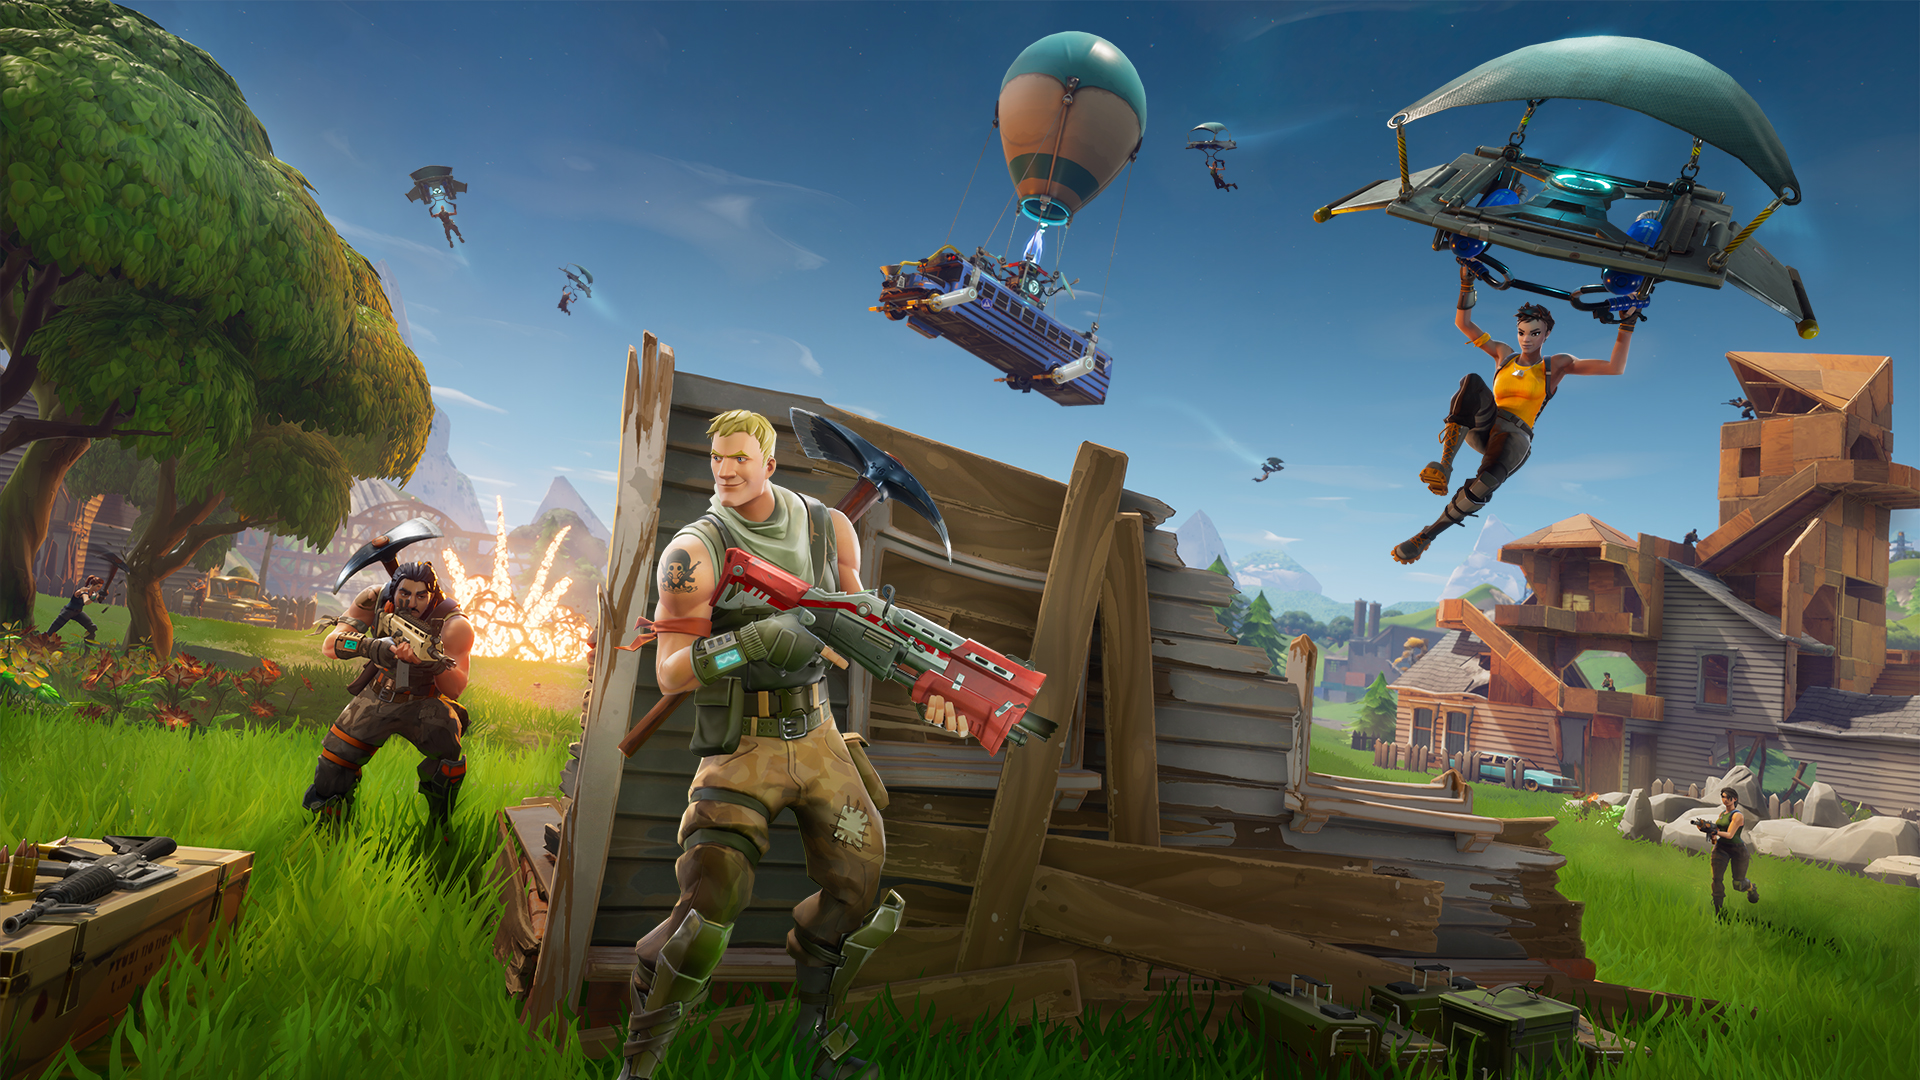 How To Get A Free Fortnite Skin And Other Loot With Twitch